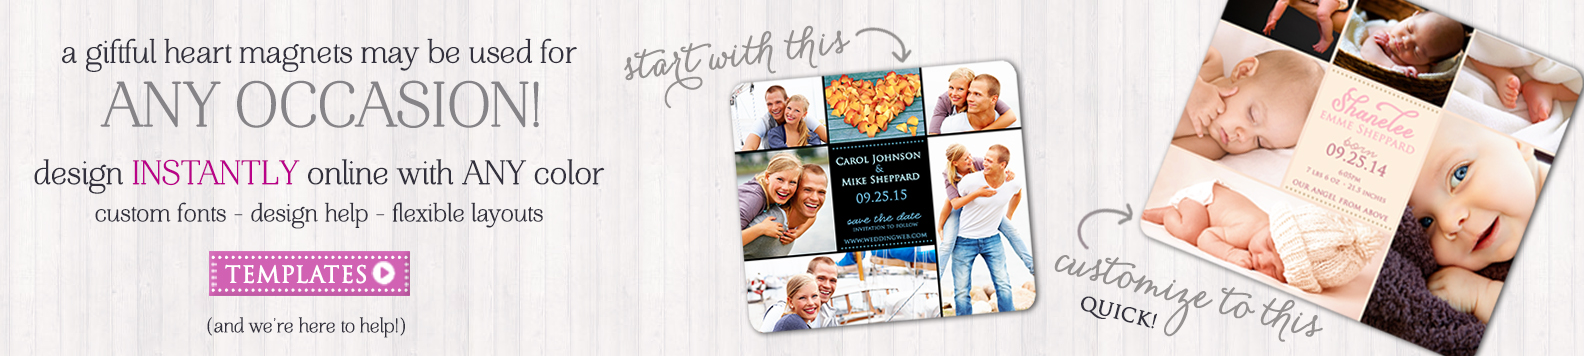 Any Occasion Custom Magnets